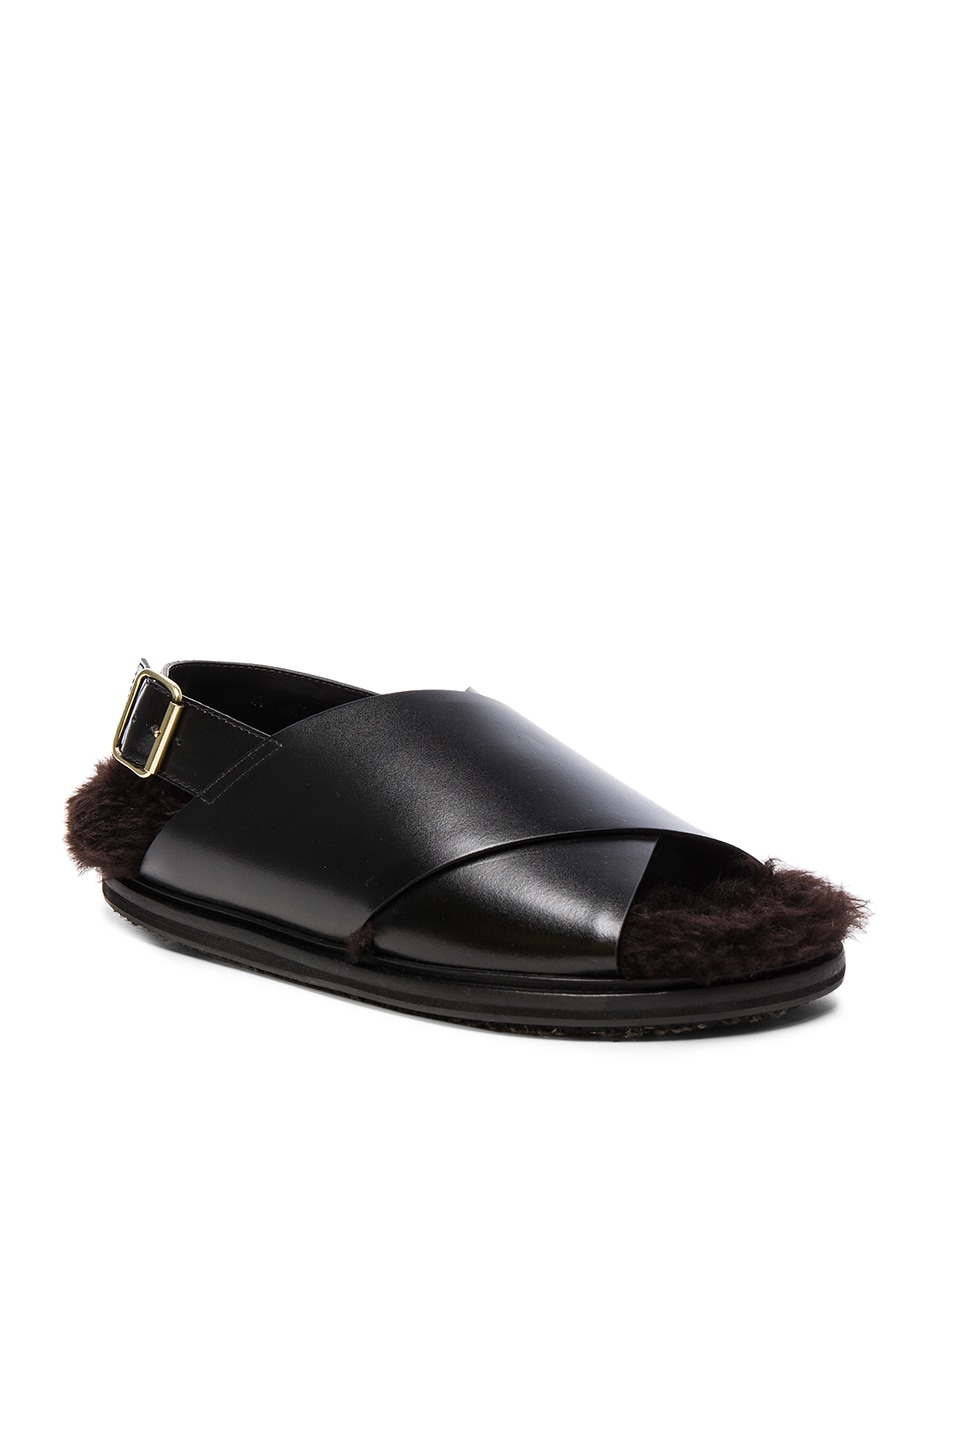 outlet discount authentic Marni Patent Leather Crossover Sandals cheap sale outlet store official site sale online lowest price online sale new kDmD8h